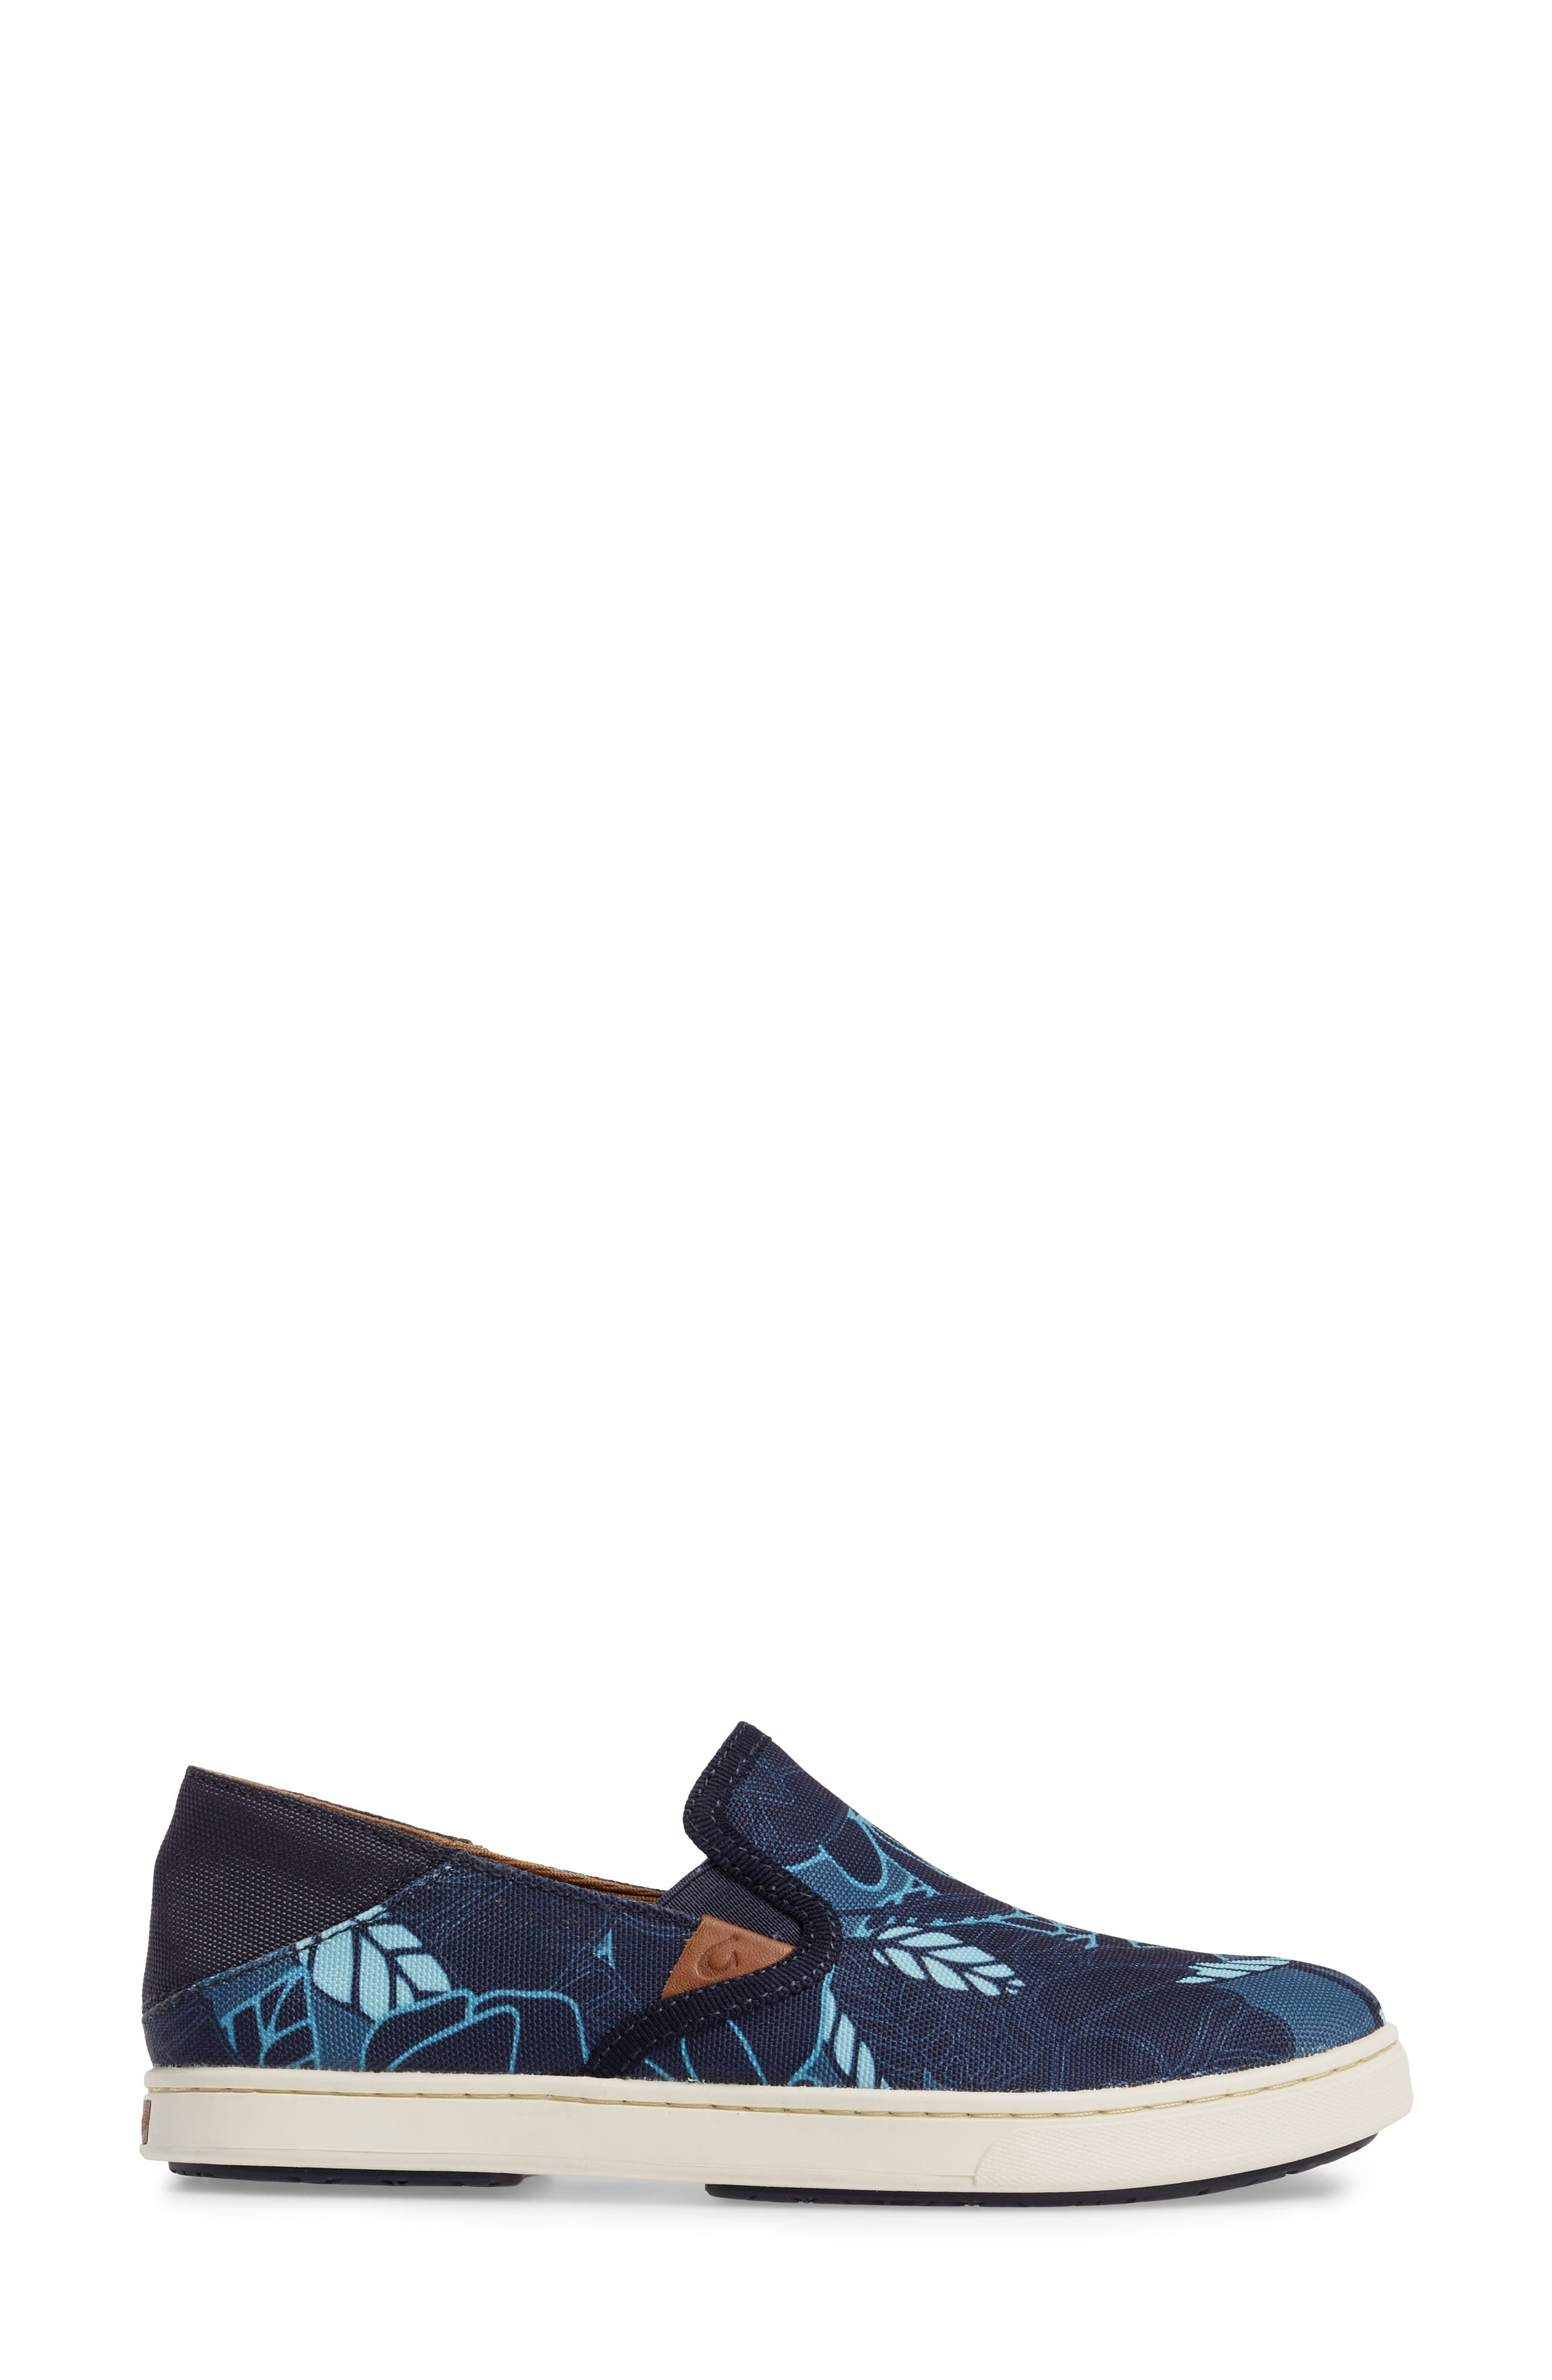 Pehuea Print Slip-On Sneaker,                             Alternate thumbnail 4, color,                             Trench Blue/ Stormy Blue